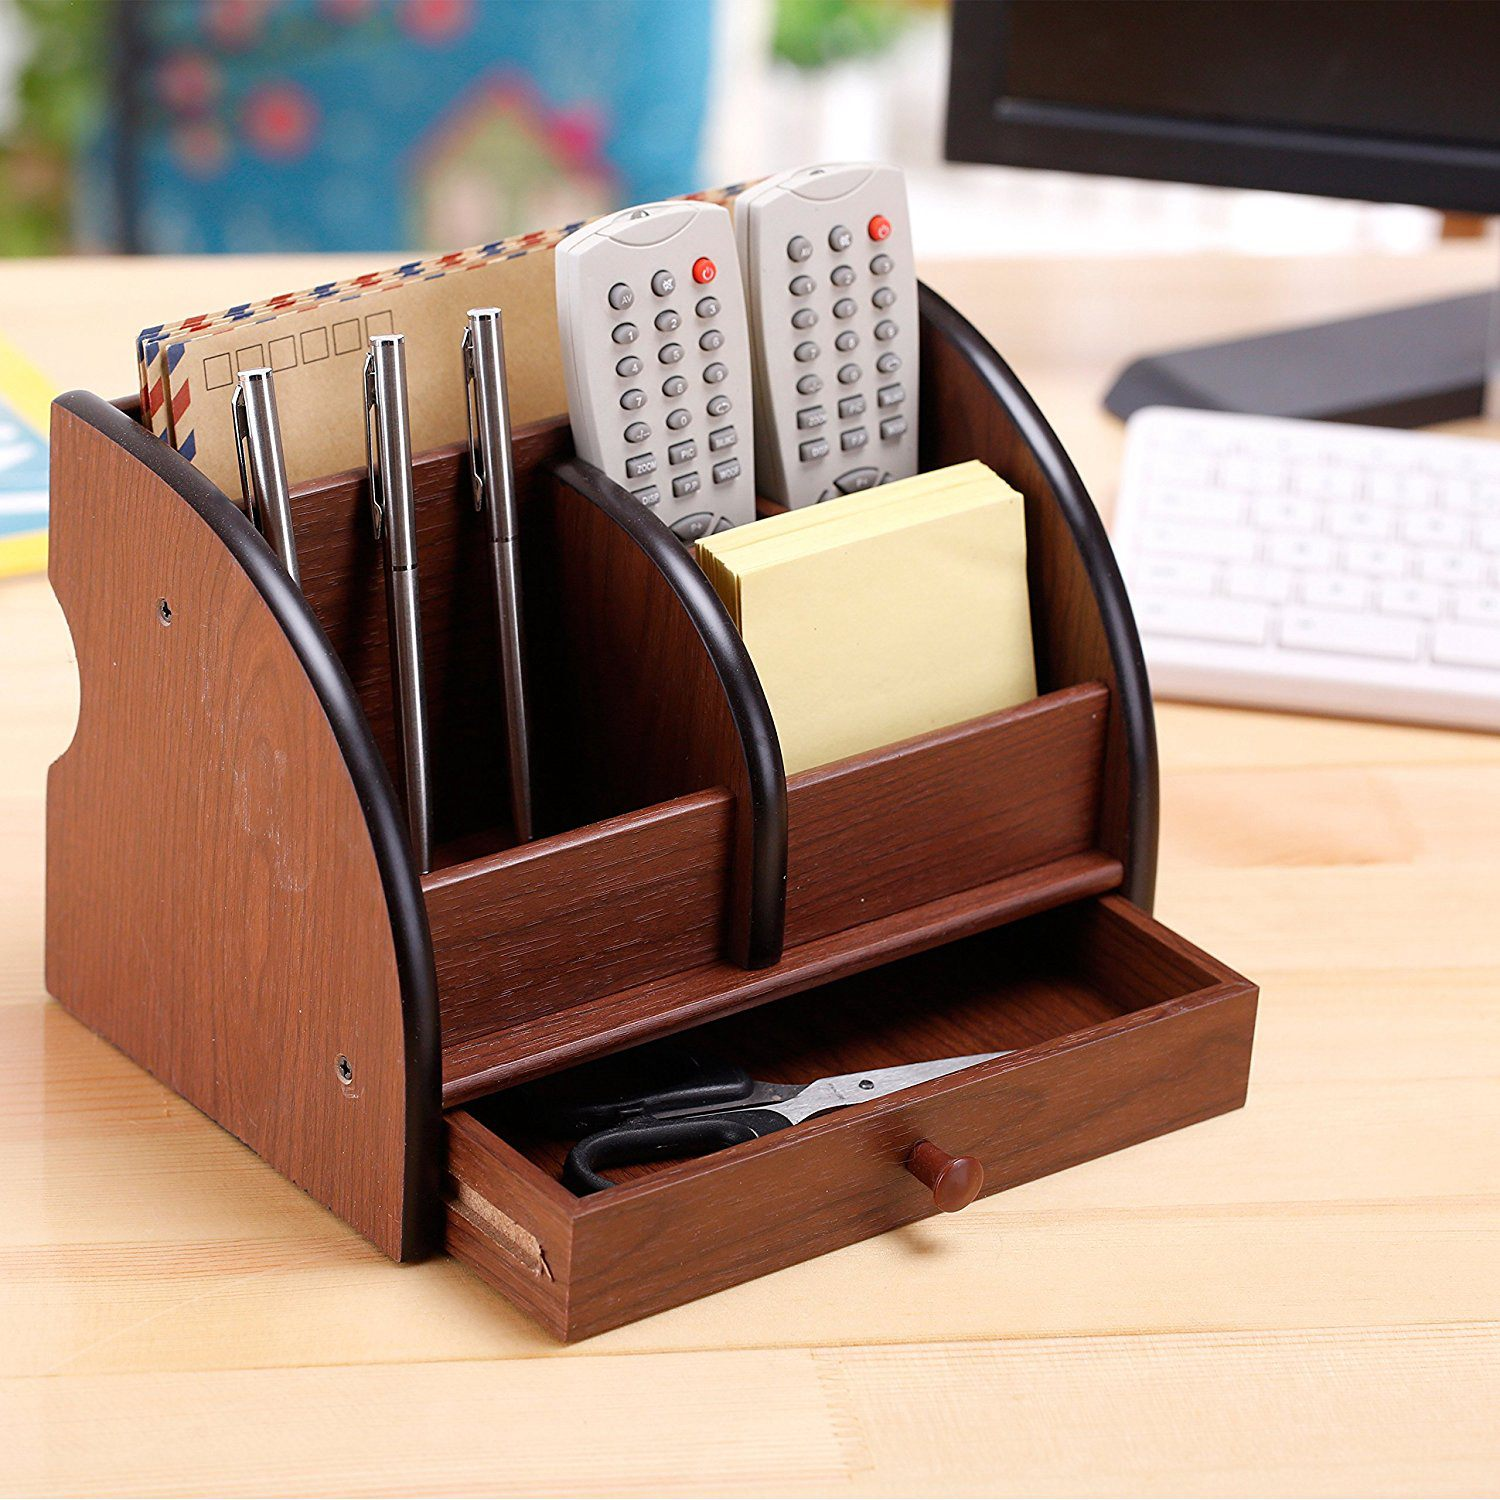 5-Compartment Luxury Brown Wood Office Desktop Organizer / Letter Sorter With Drawer